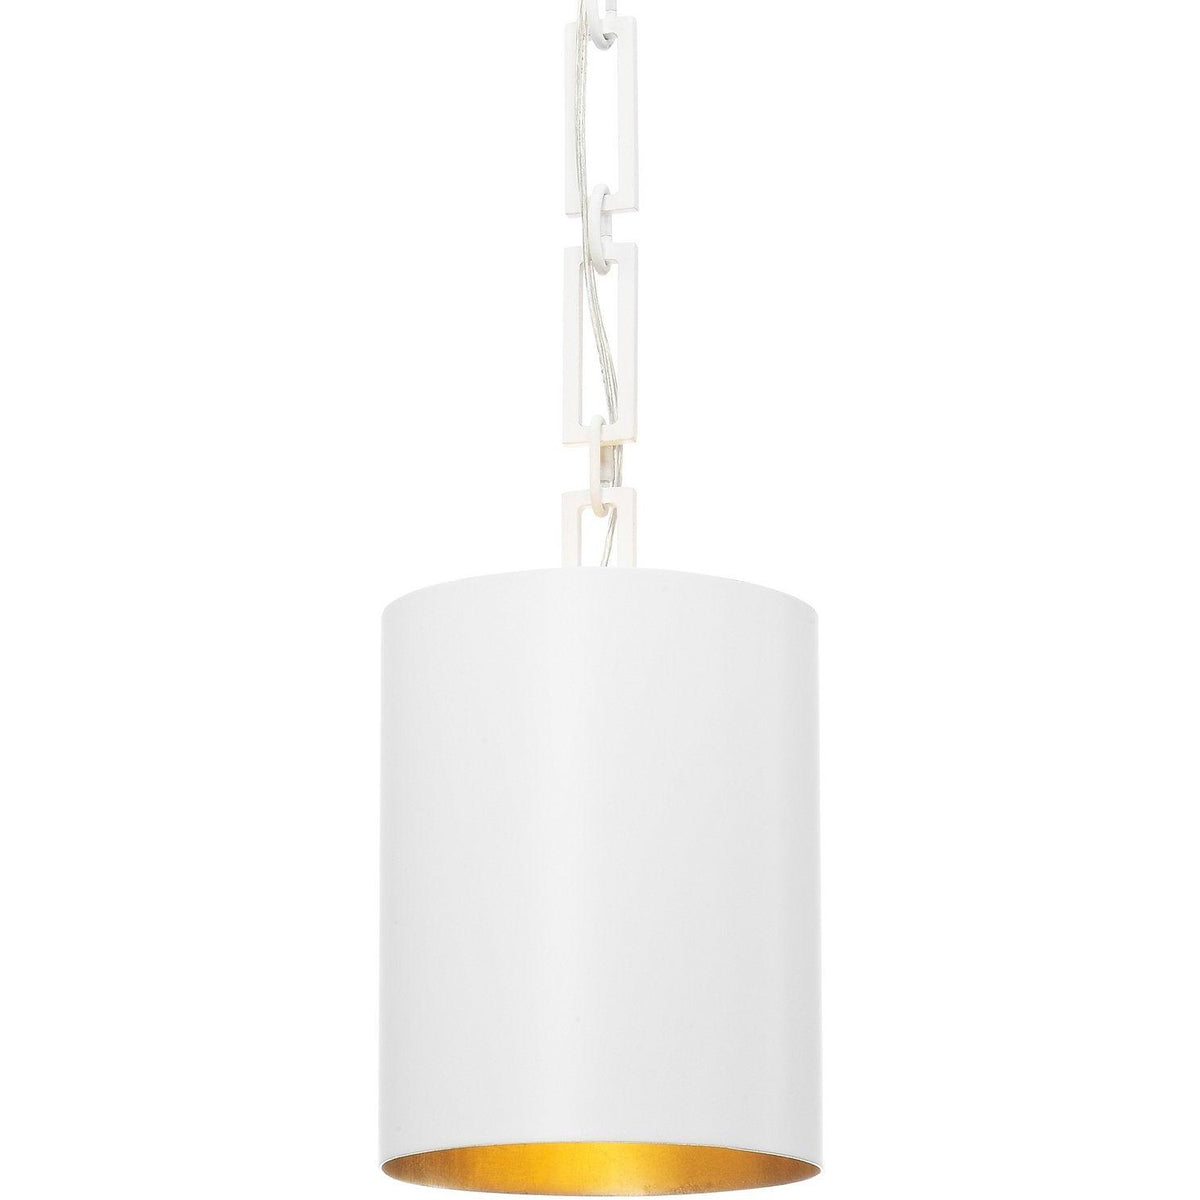 Crystorama - 8680-MT-GA - One Light Mini Chandelier - Alston - Matte White / Antique Gold